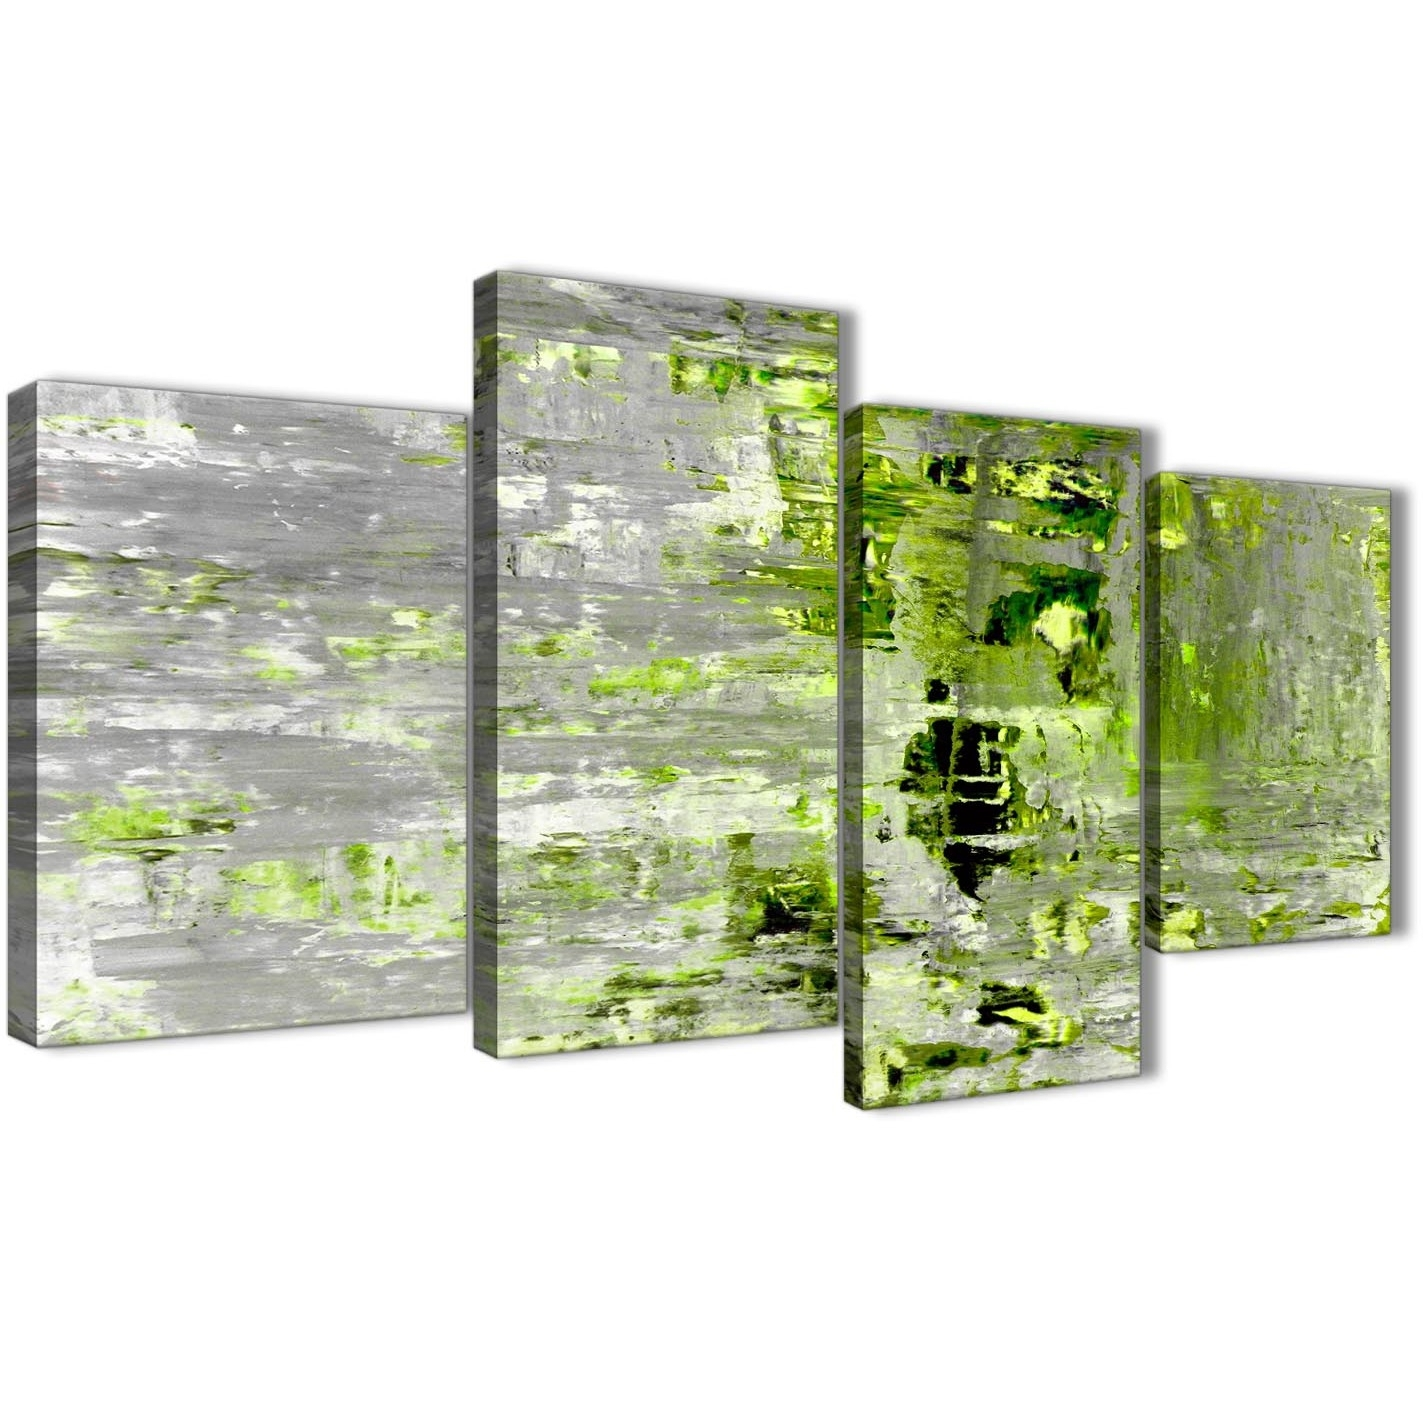 Large Lime Green Grey Abstract Painting Wall Art Print Canvas Pertaining To Most Current Lime Green Canvas Wall Art (View 13 of 15)